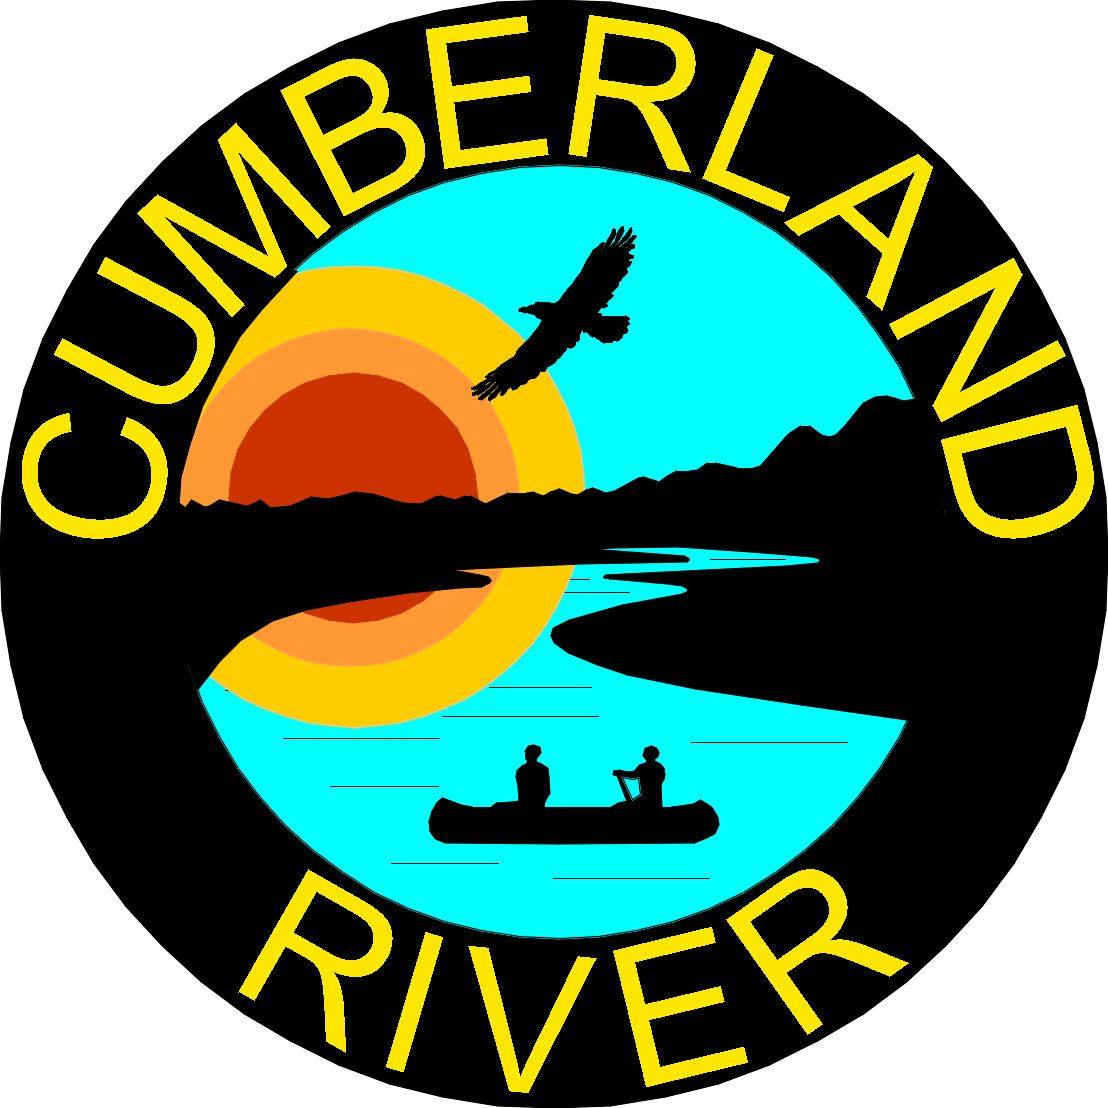 Cumberland River logo that is aptly designed for this.